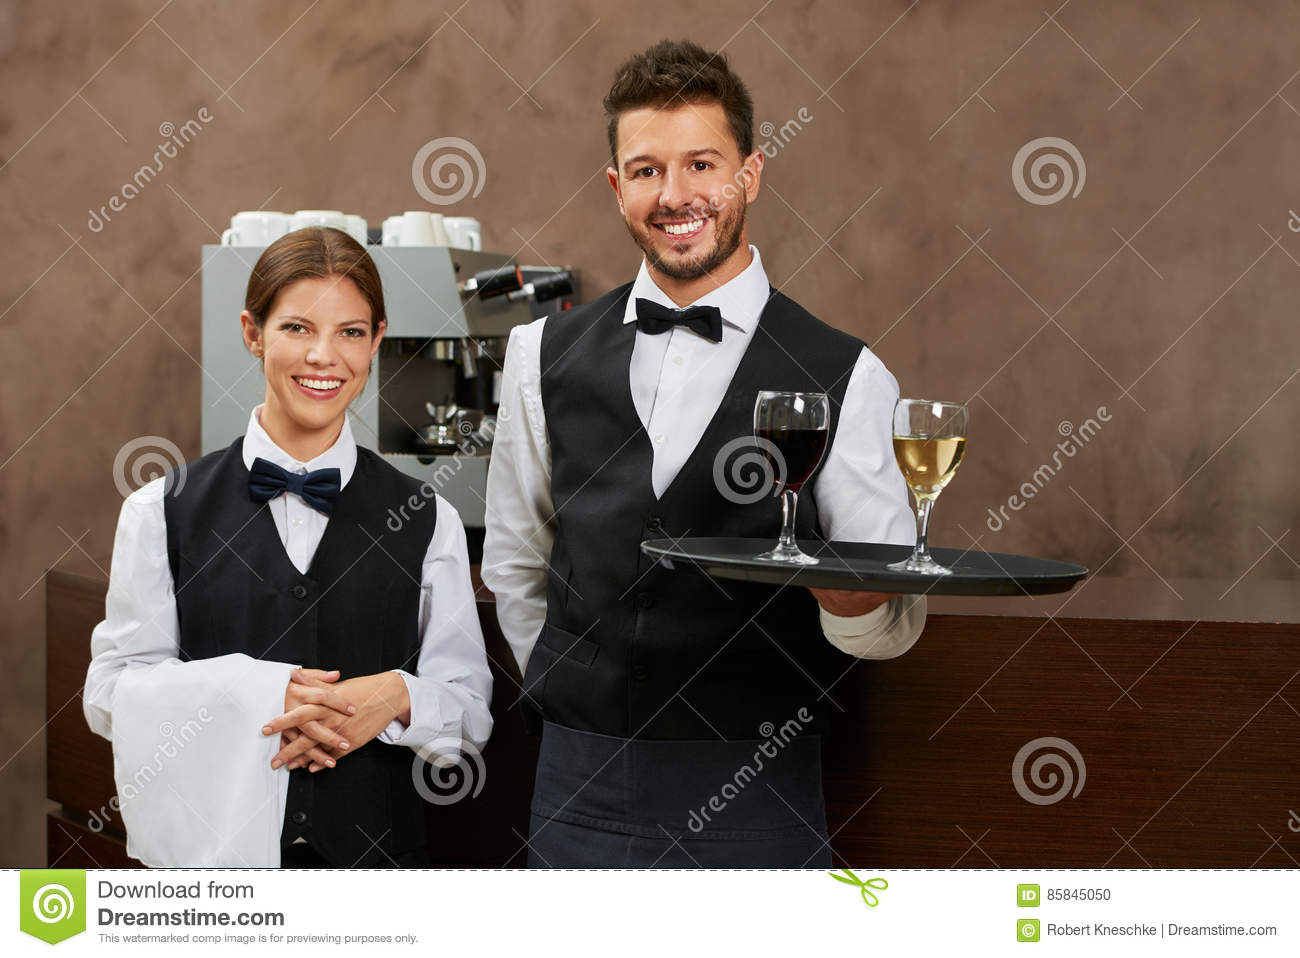 Waiter and waitress serving drinks